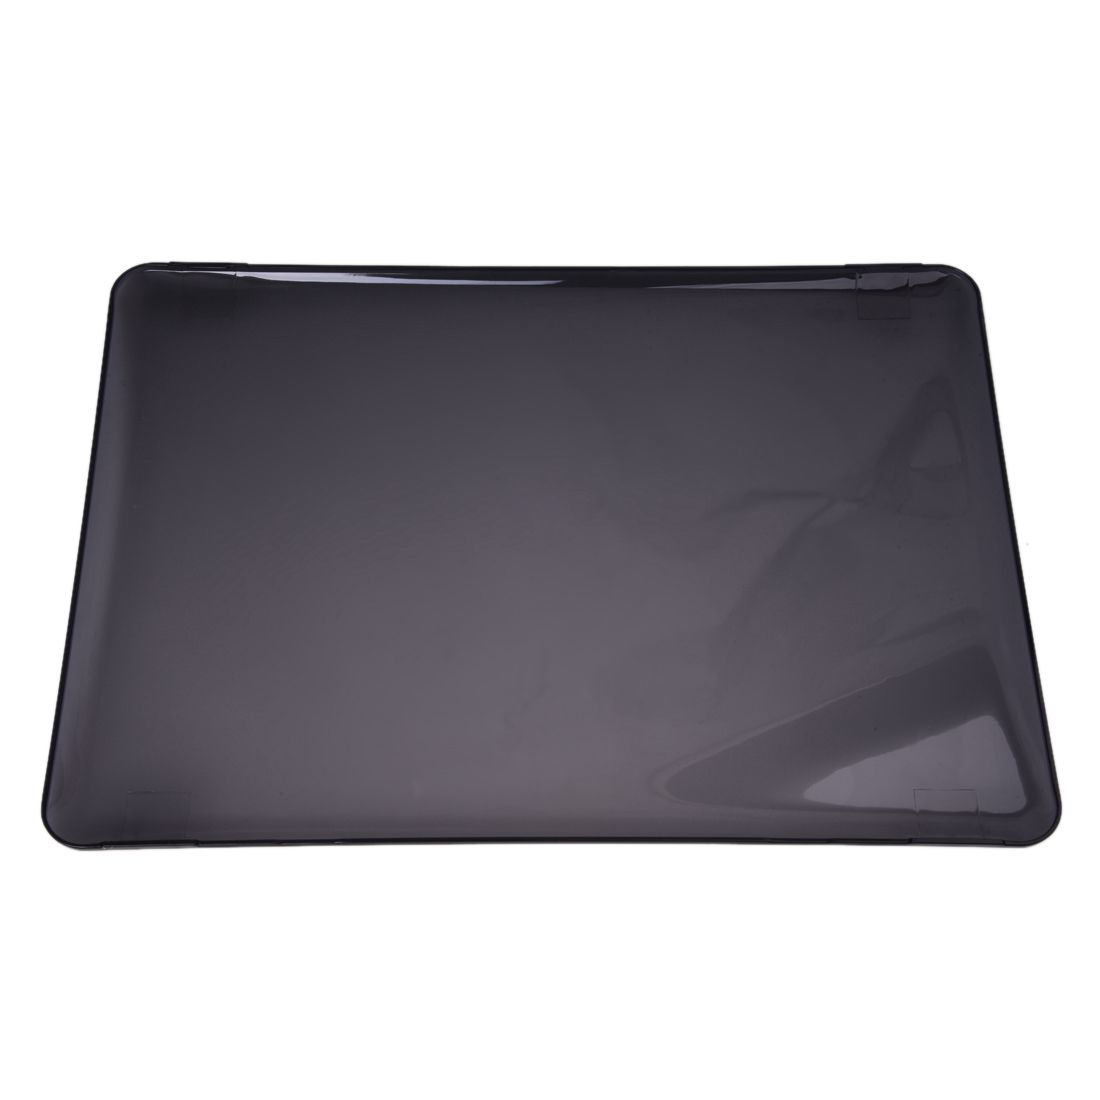 Crystal Hard Case For Apple Macbook Laptop Cover- Pro 13 inch A1278 Black